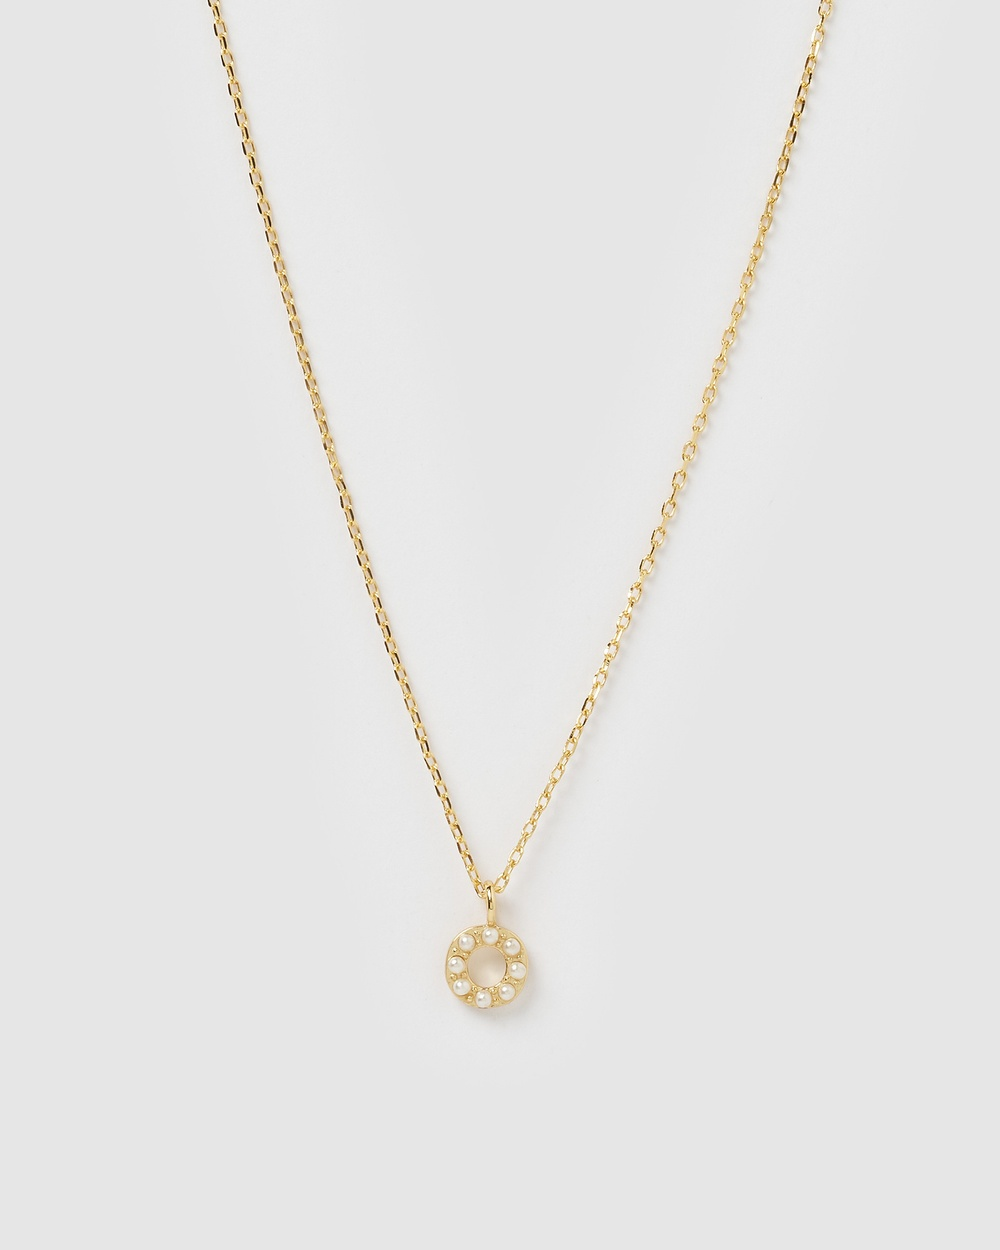 Izoa Pearl Letter O Necklace Gold Jewellery Gold